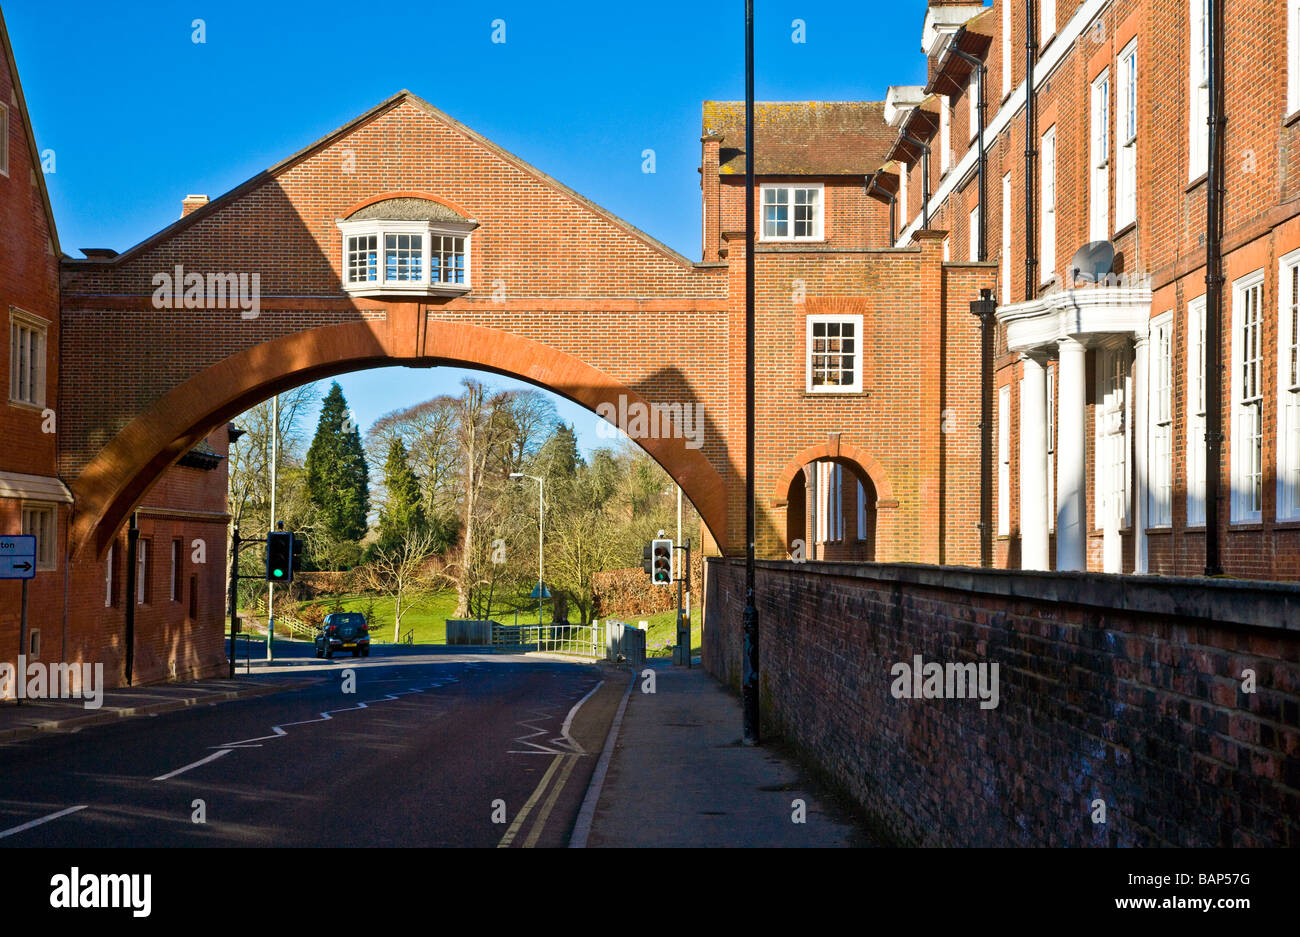 Marlborough College one of the most famous English public schools in the market town of Marlborough Wiltshire England - Stock Image